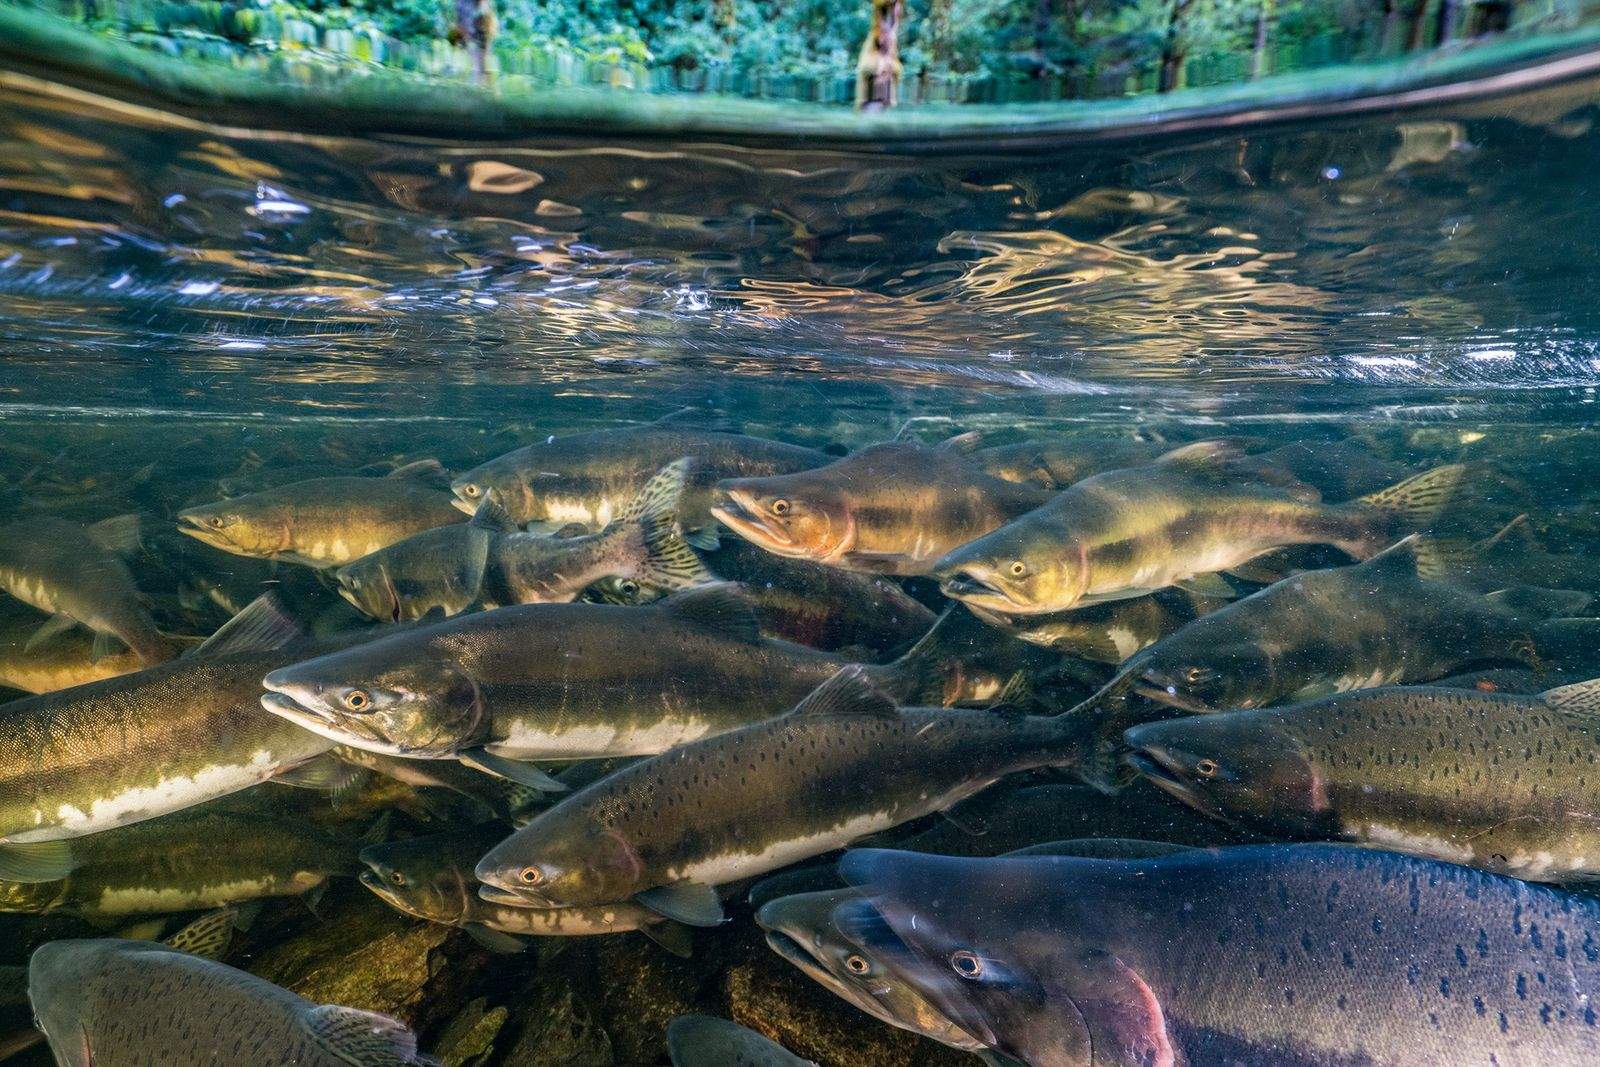 Many freshwater fish species have declined by 76 percent in less than 50 years